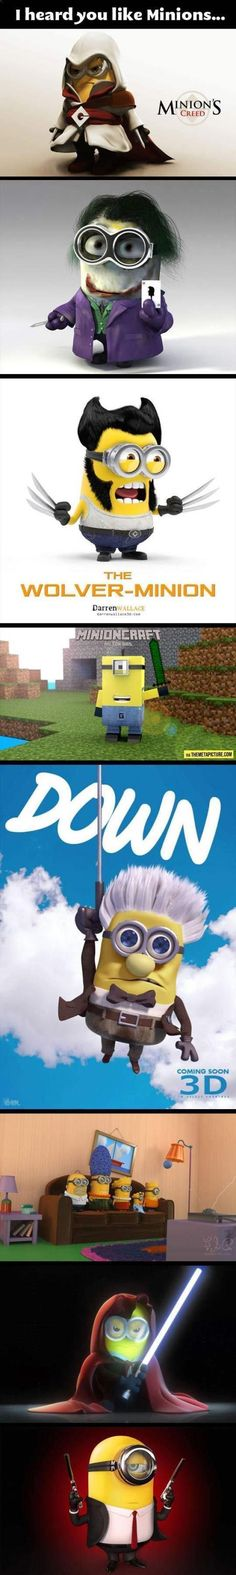 Minions Despicable Me funny